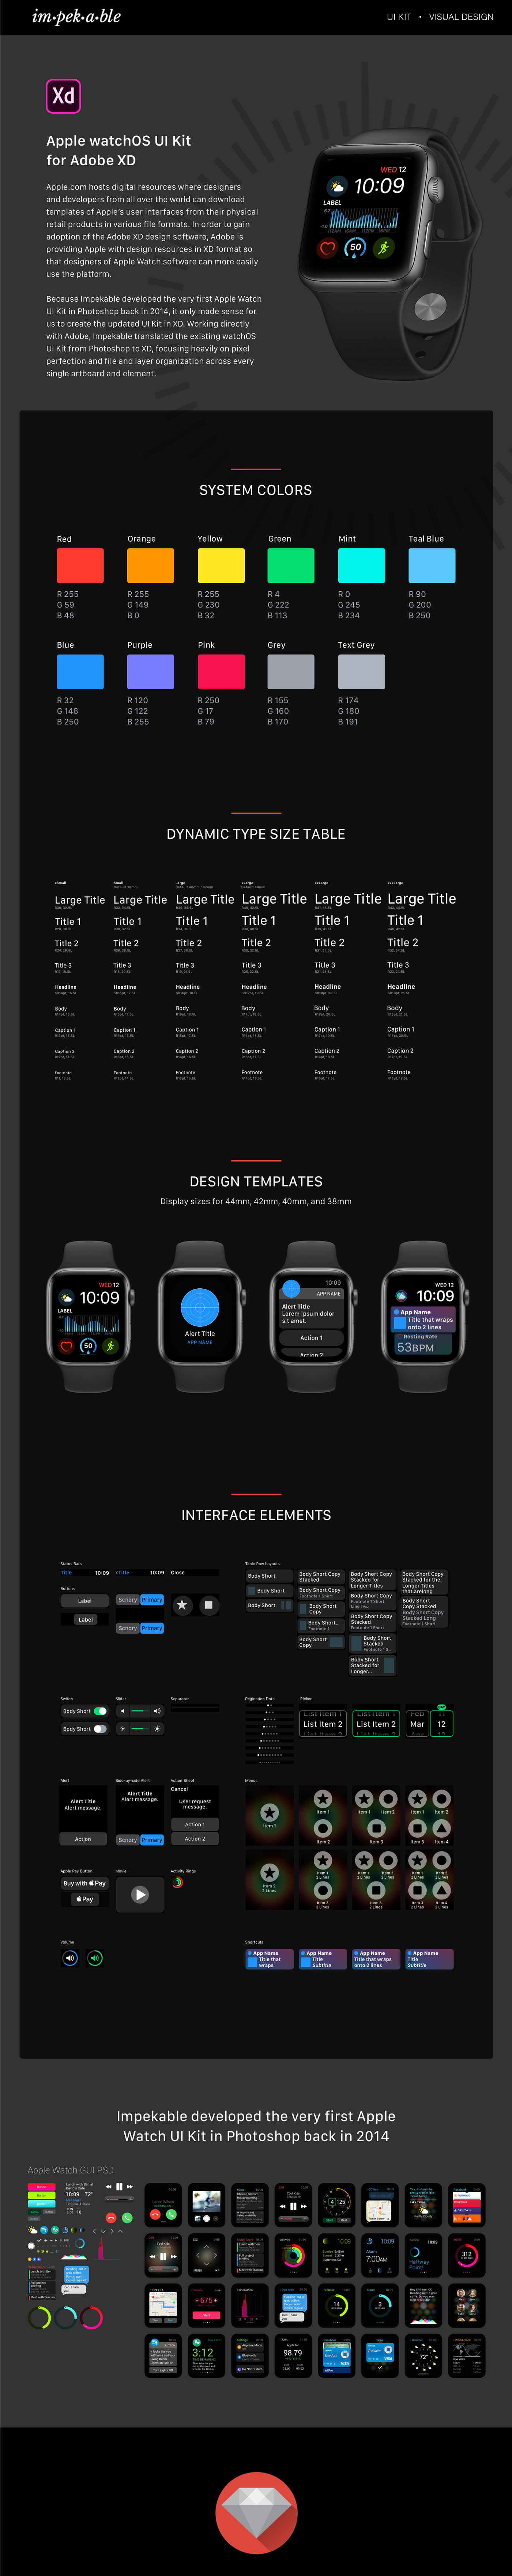 ui kit free visual design resources apple watch watch wearables